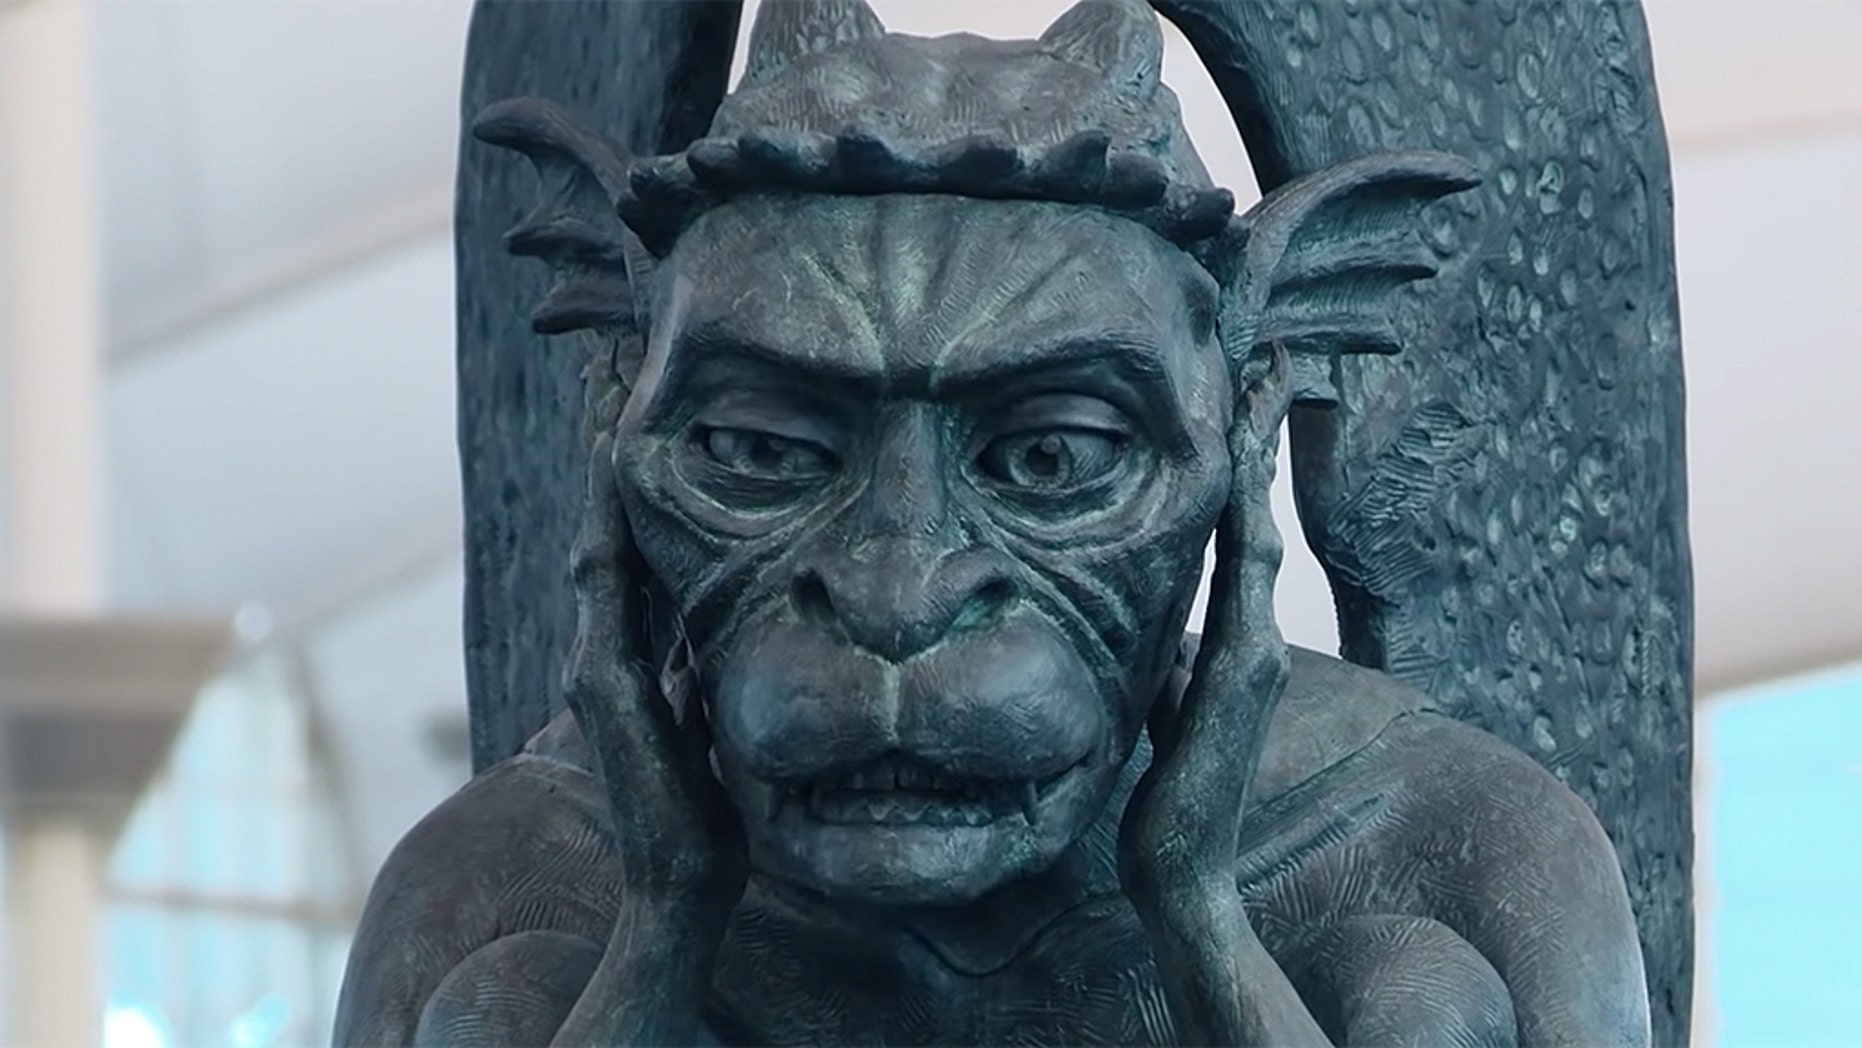 The airport shared footage of the chatty gargoyle surprising passersby to YouTube, where it has since gone viral with over 70,000 views.